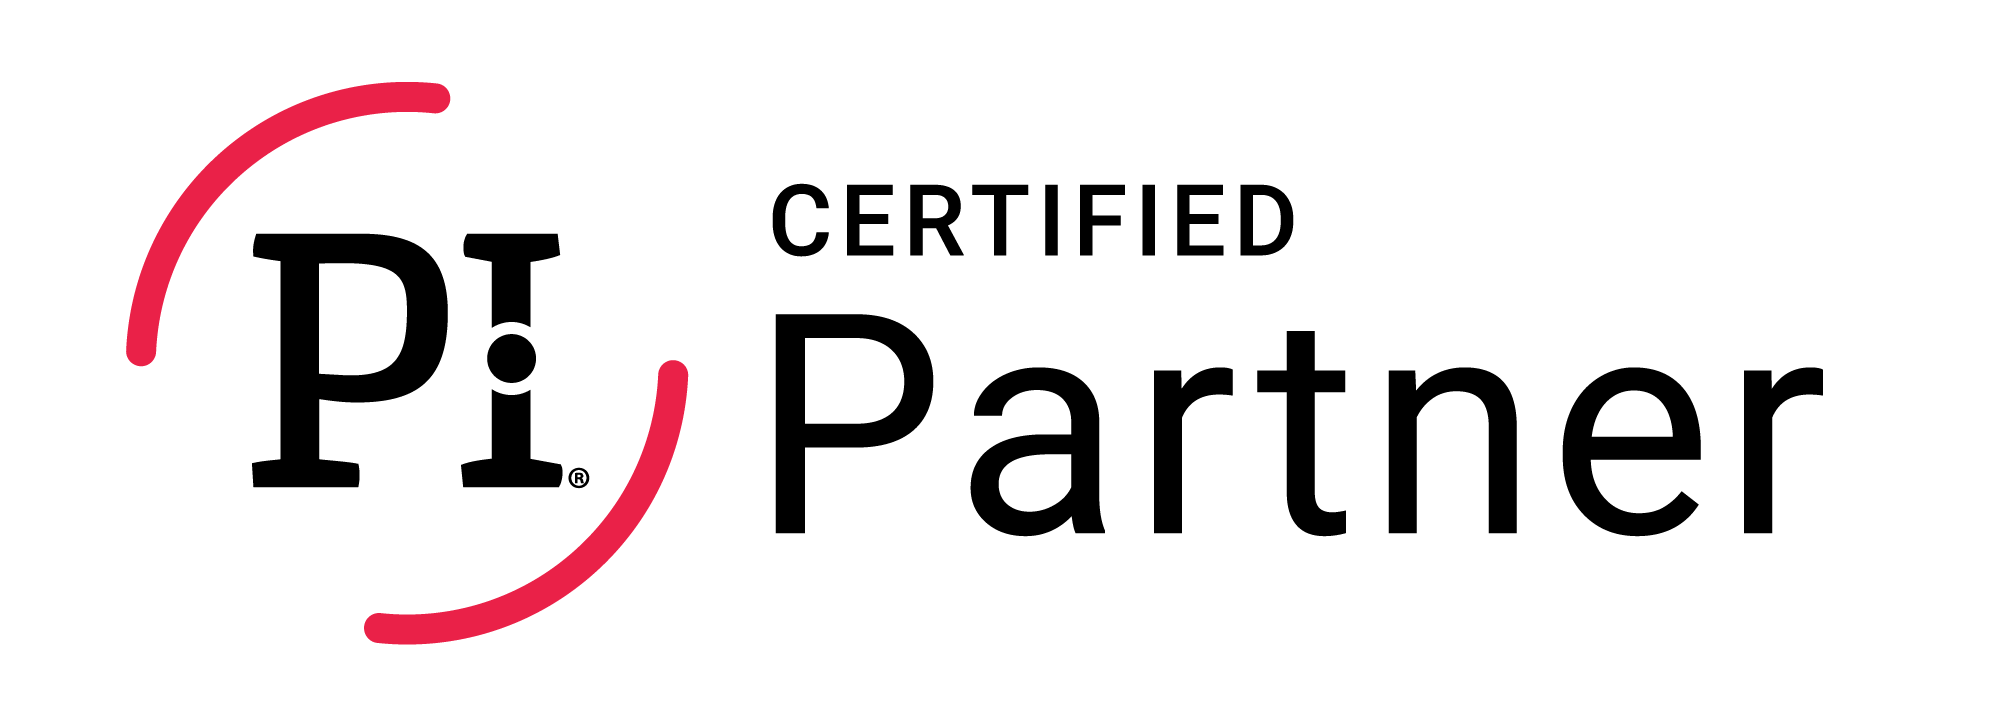 Predictive Index - Certified Partner